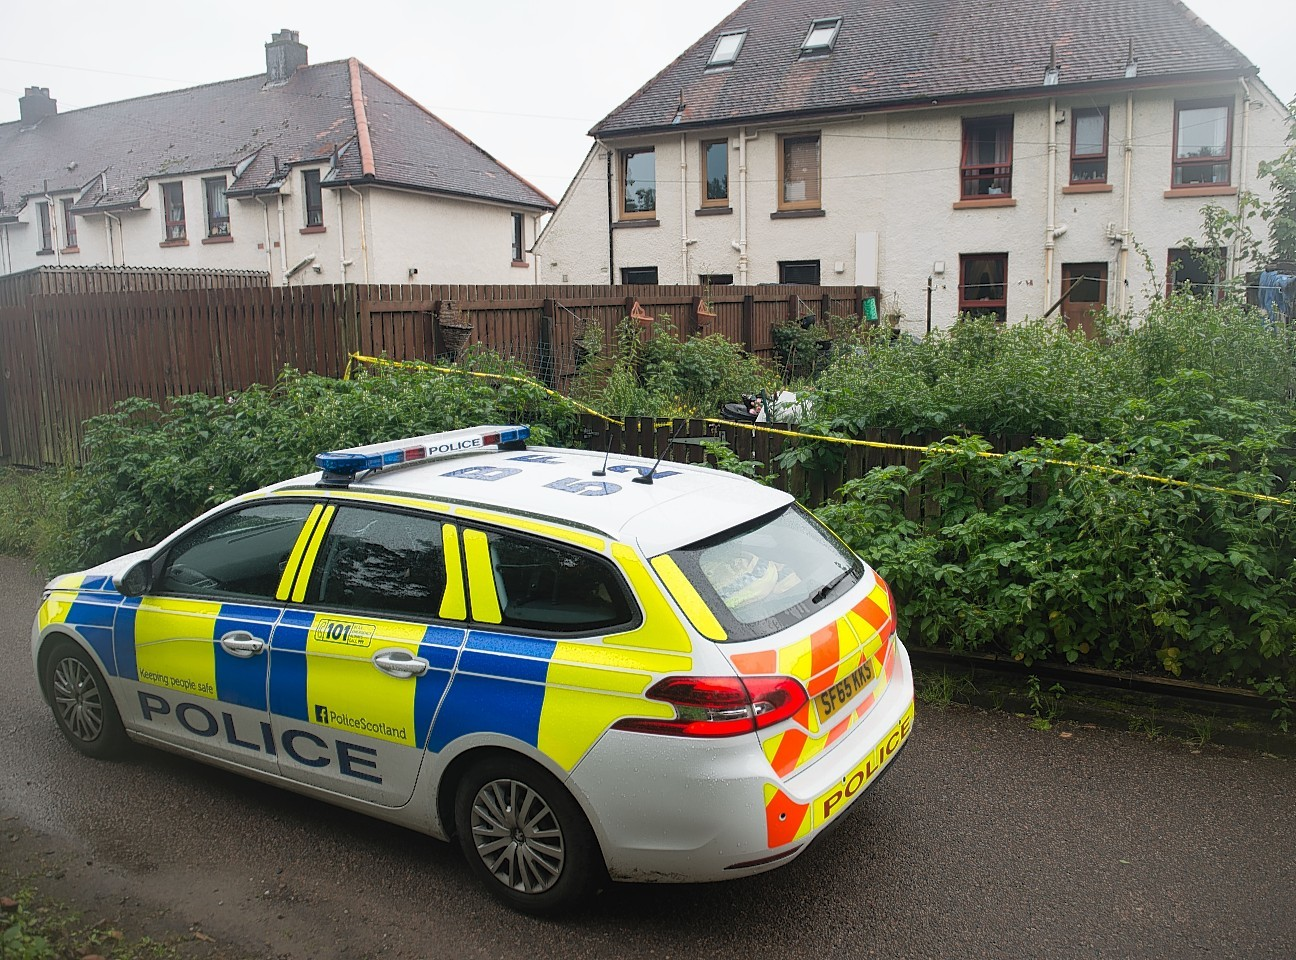 Police at the scene of the alleged chainsaw incident